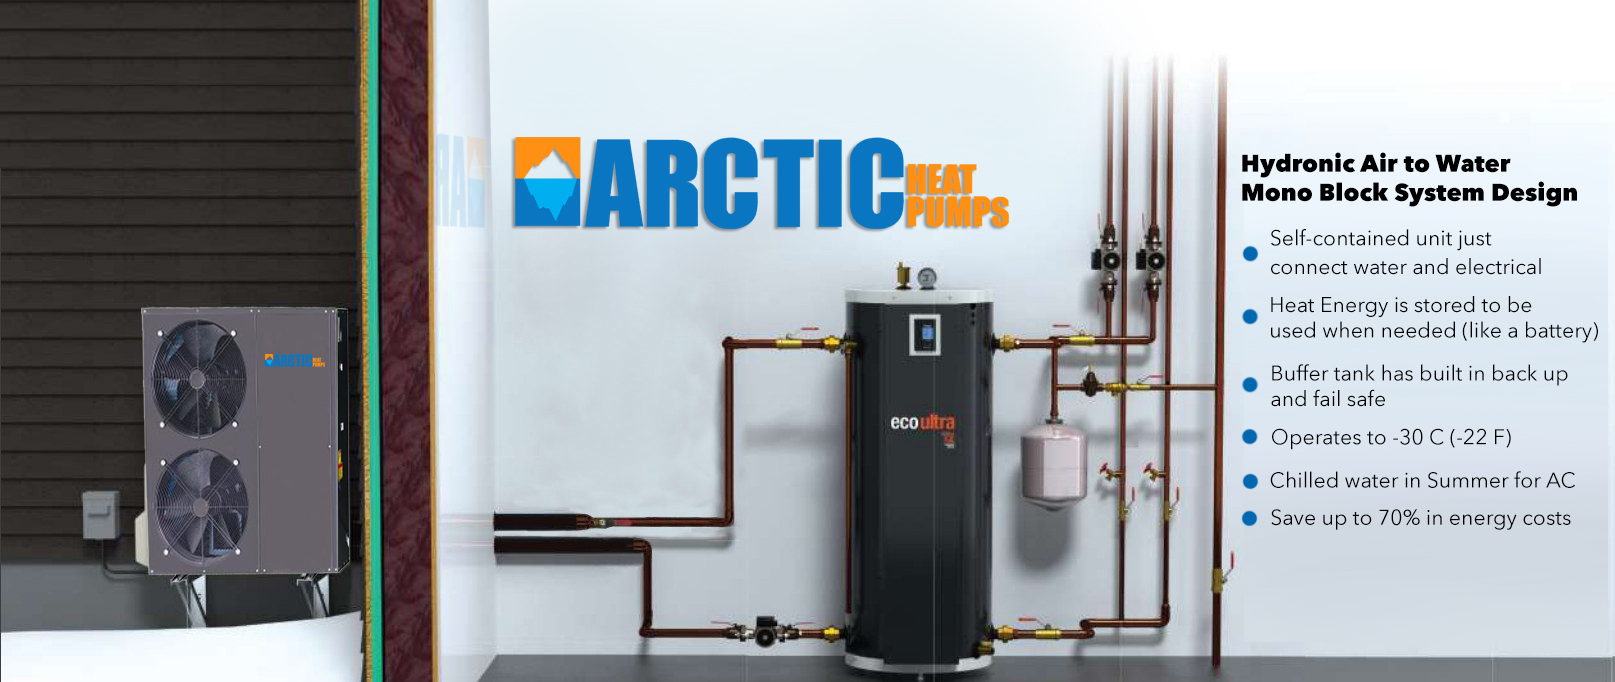 Arctic Heat pumps - Cold Climate Air to Water Heat Pumps for